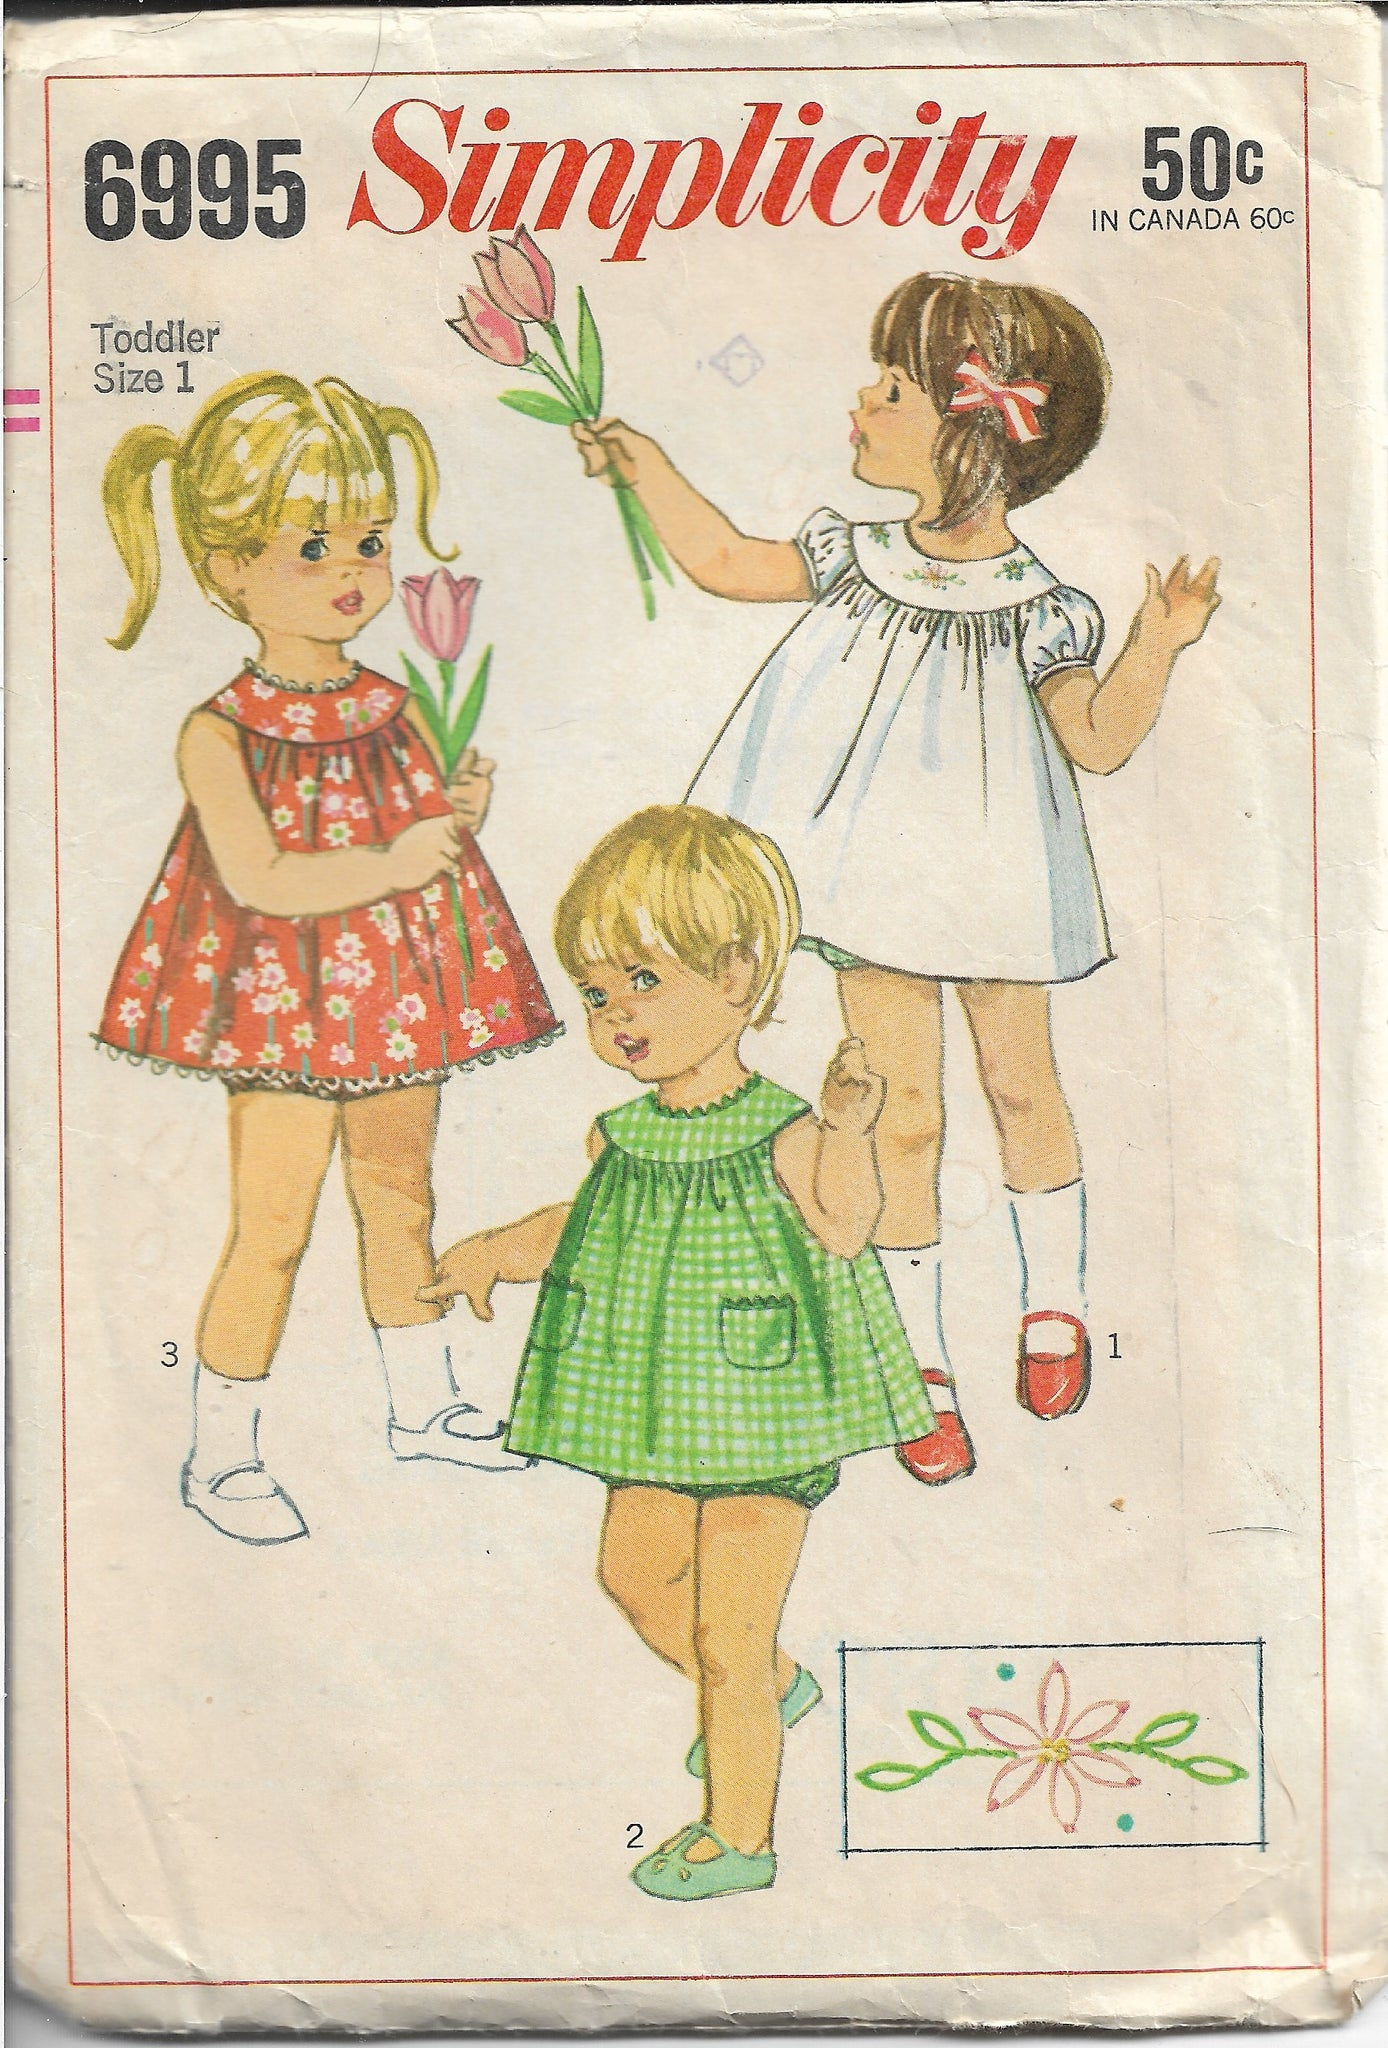 Simplicity 6995 Toddler Short Dress Panties Vintage Sewing Pattern 1960s - VintageStitching - Vintage Sewing Patterns